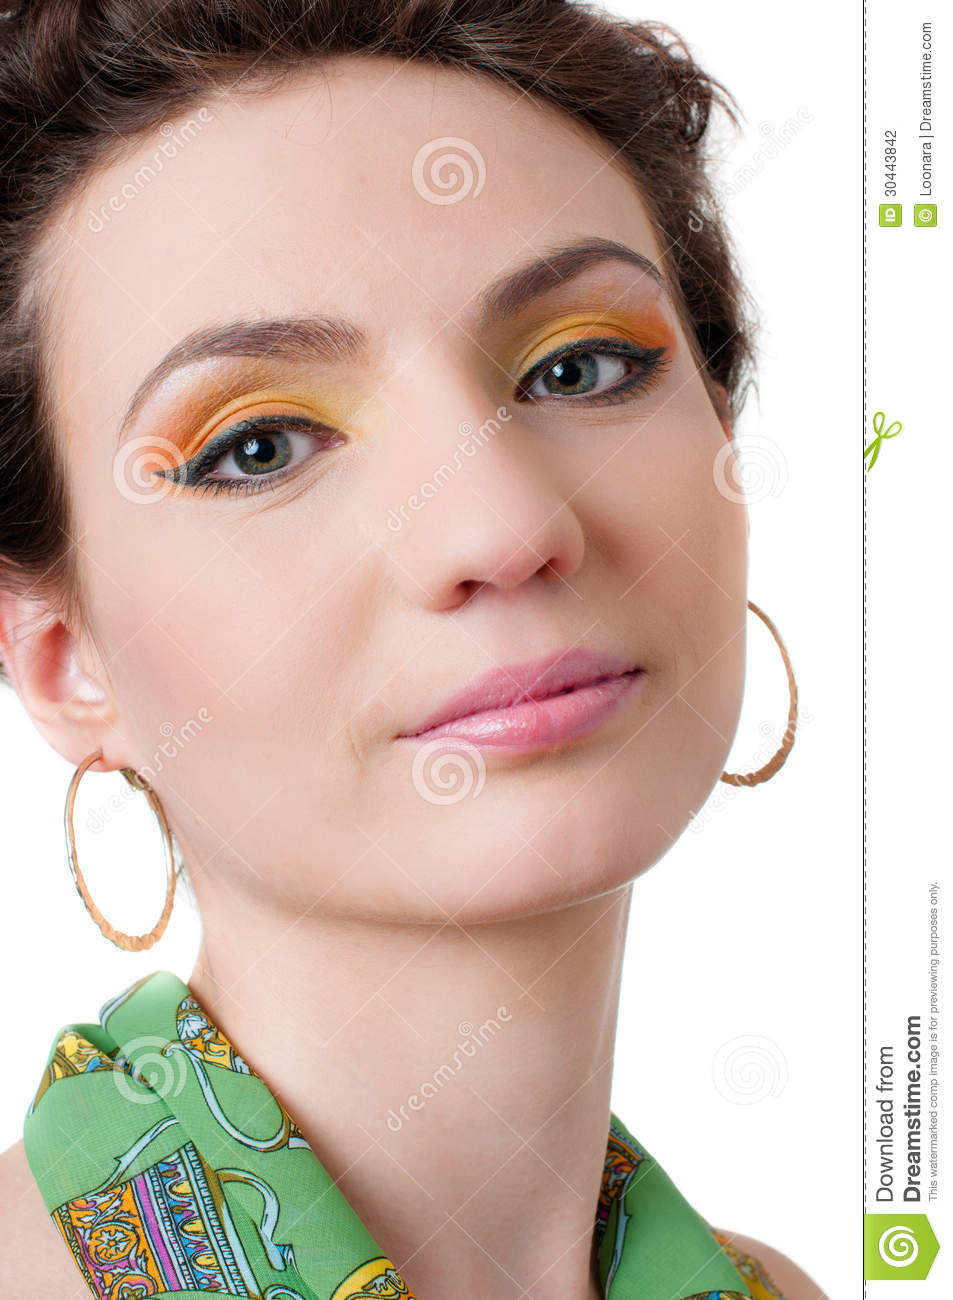 Young Girl With Expressive Makeup, Isolated Stock